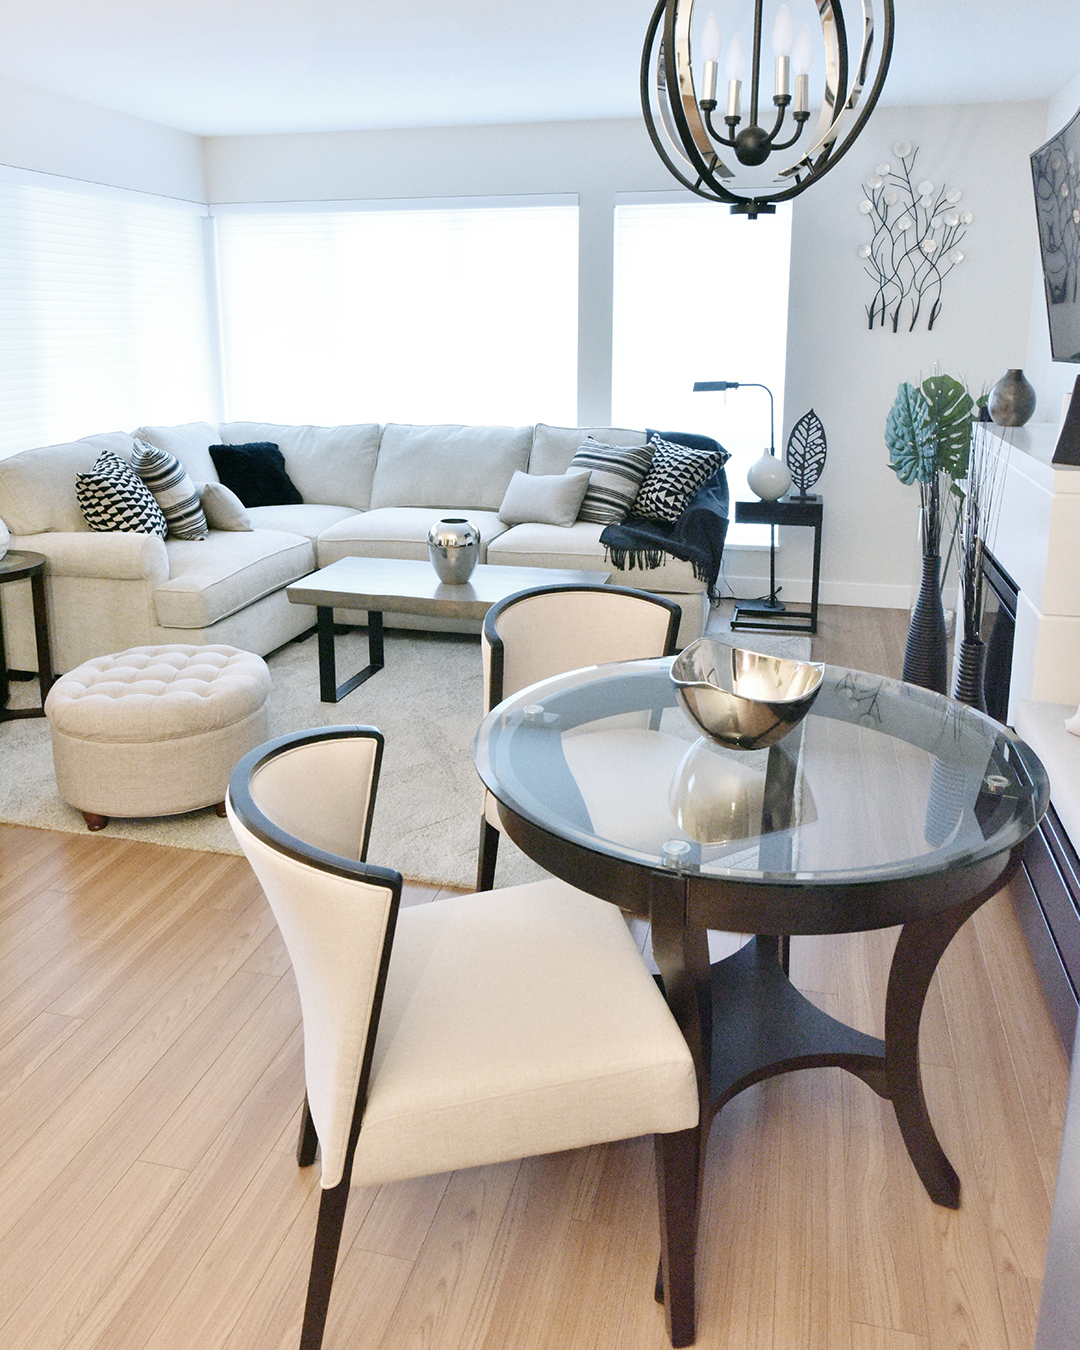 Small Condo Decorating Ideas | Buyer Select Blog | Designed by Tracy Svendsen